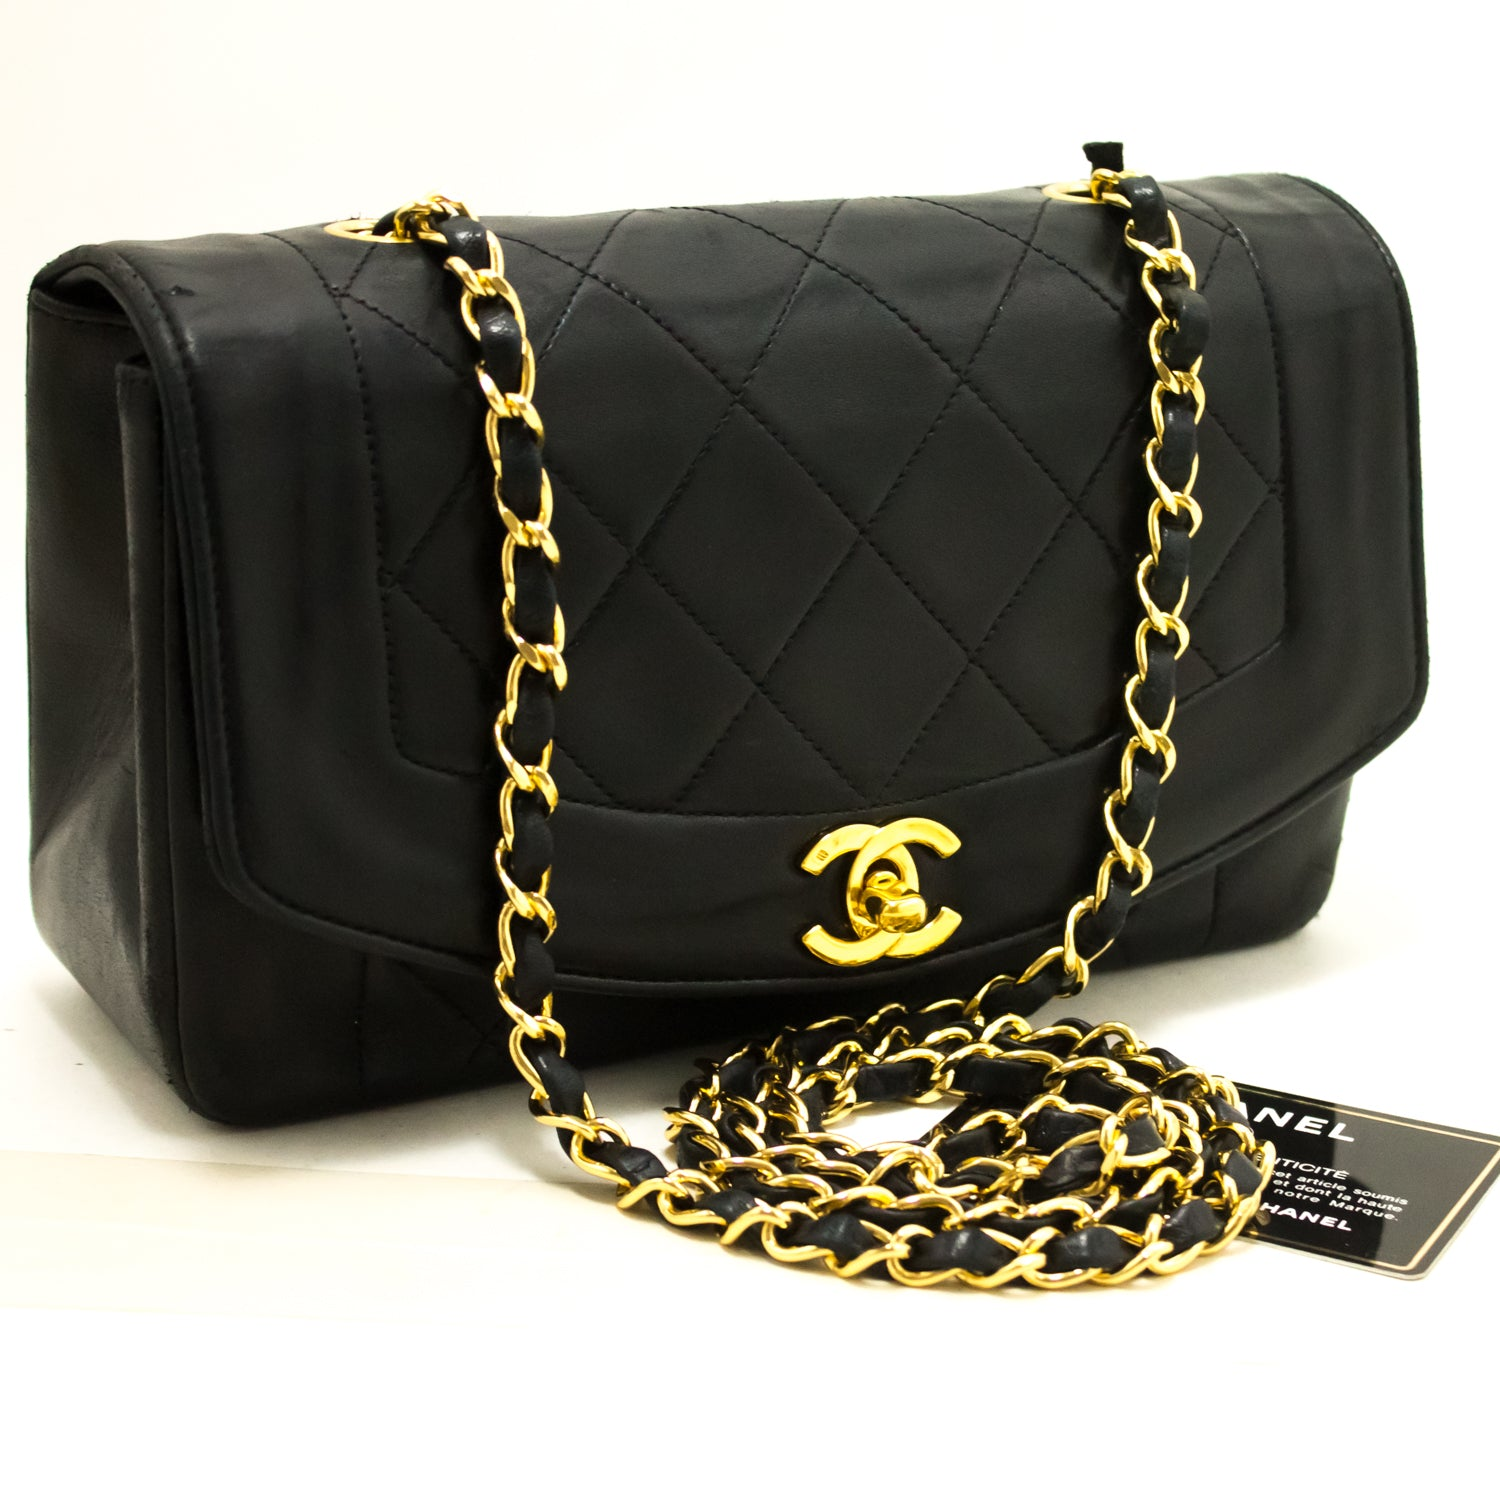 ... CHANEL Diana Flap Chain Shoulder Bag Crossbody Black Quilted Lamb  p25-Chanel-hannari- ...